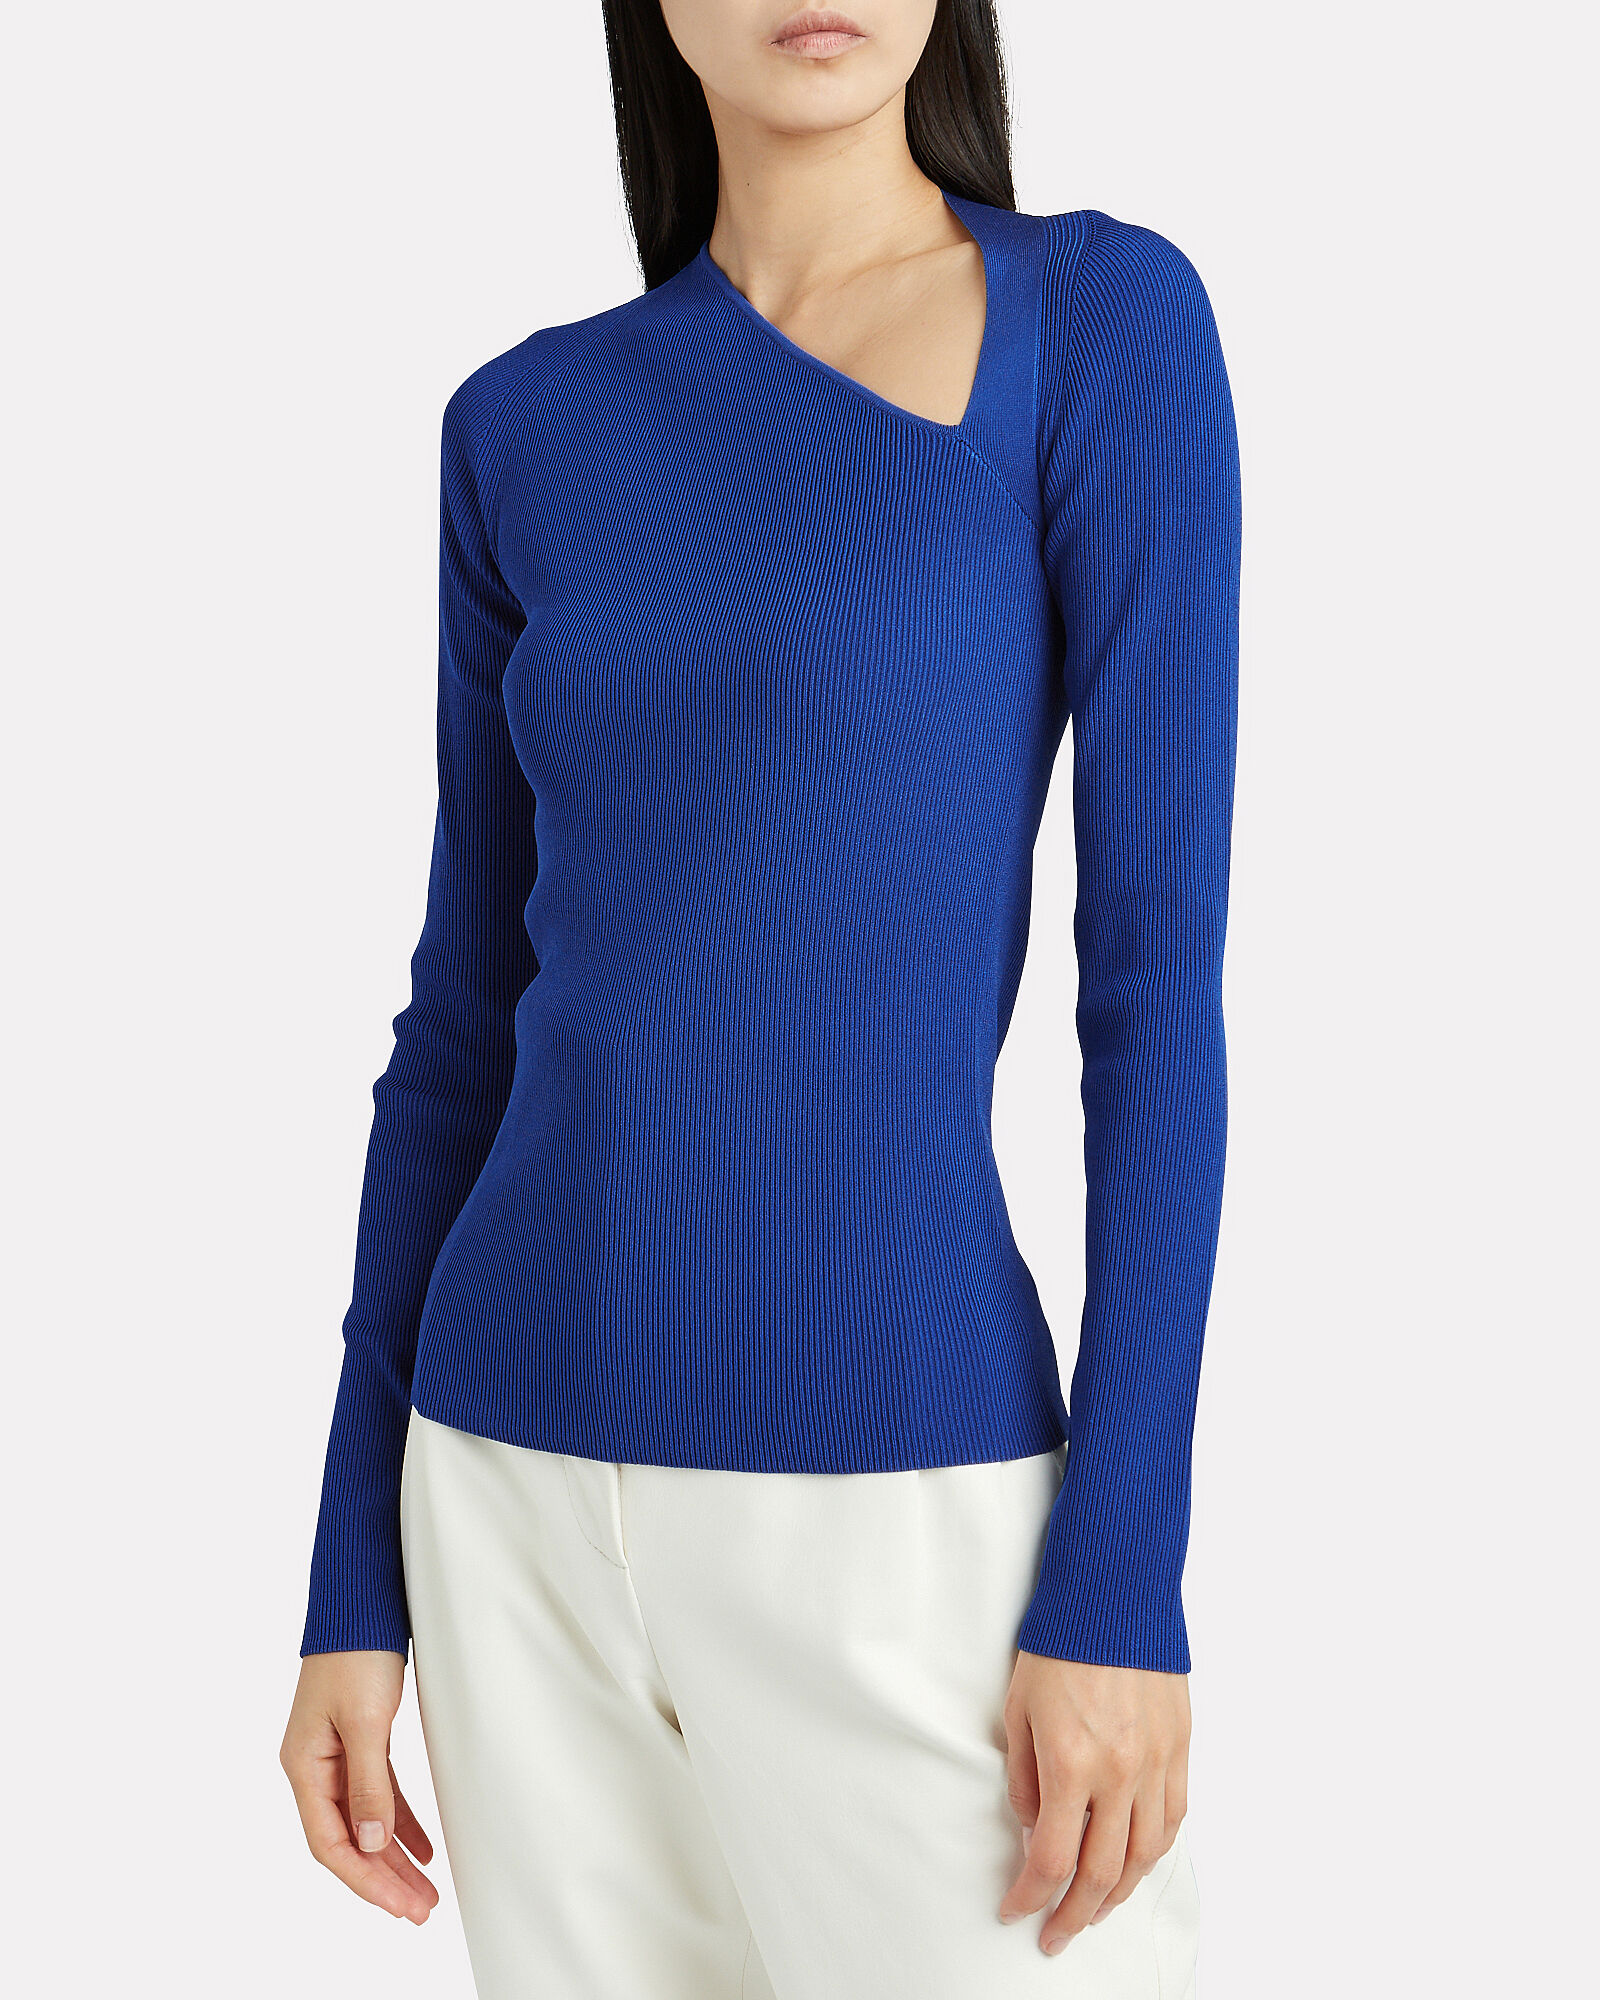 Asymmetric Rib Knit Top, YALE BLUE, hi-res